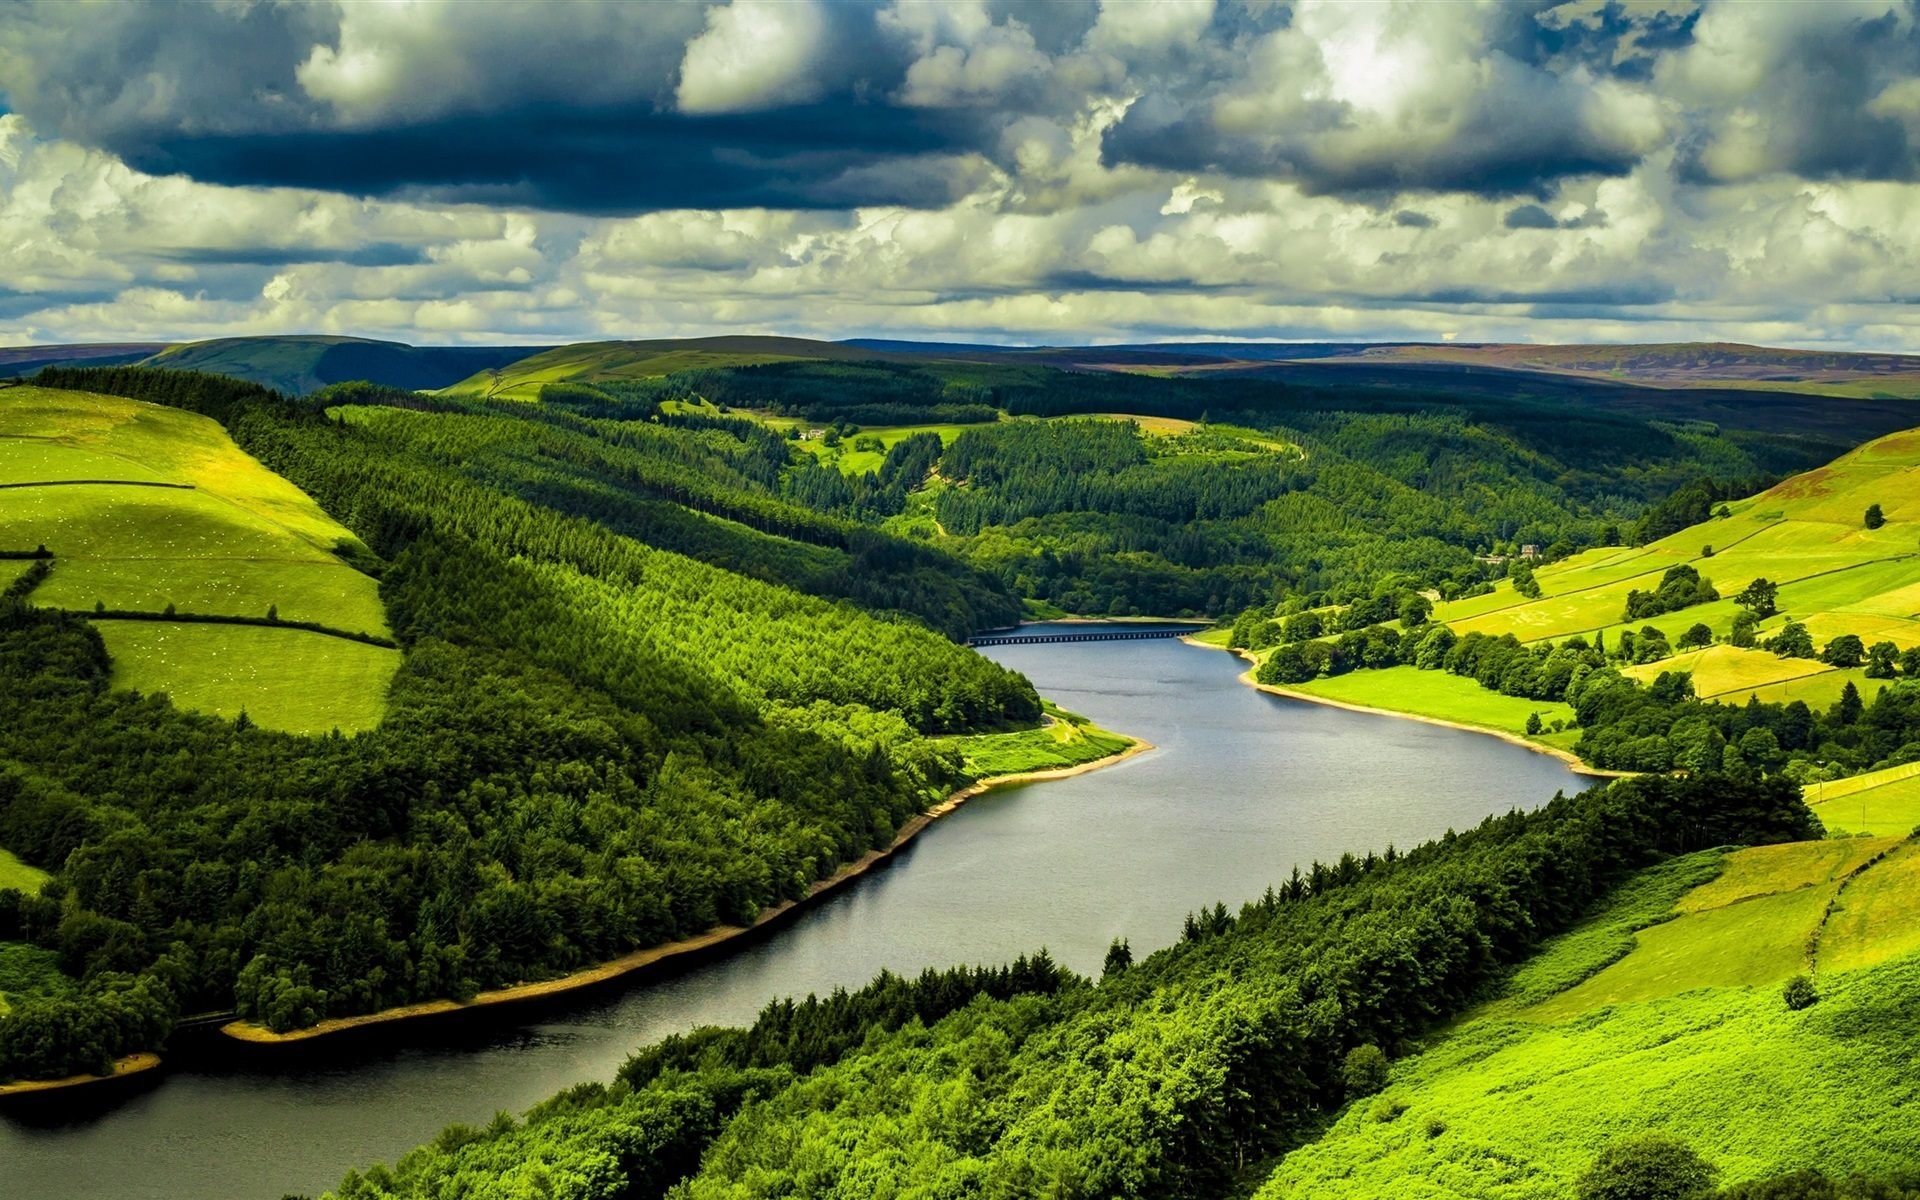 River wallpapers and desktop backgrounds up to 8k - Nature wallpaper 8k ...